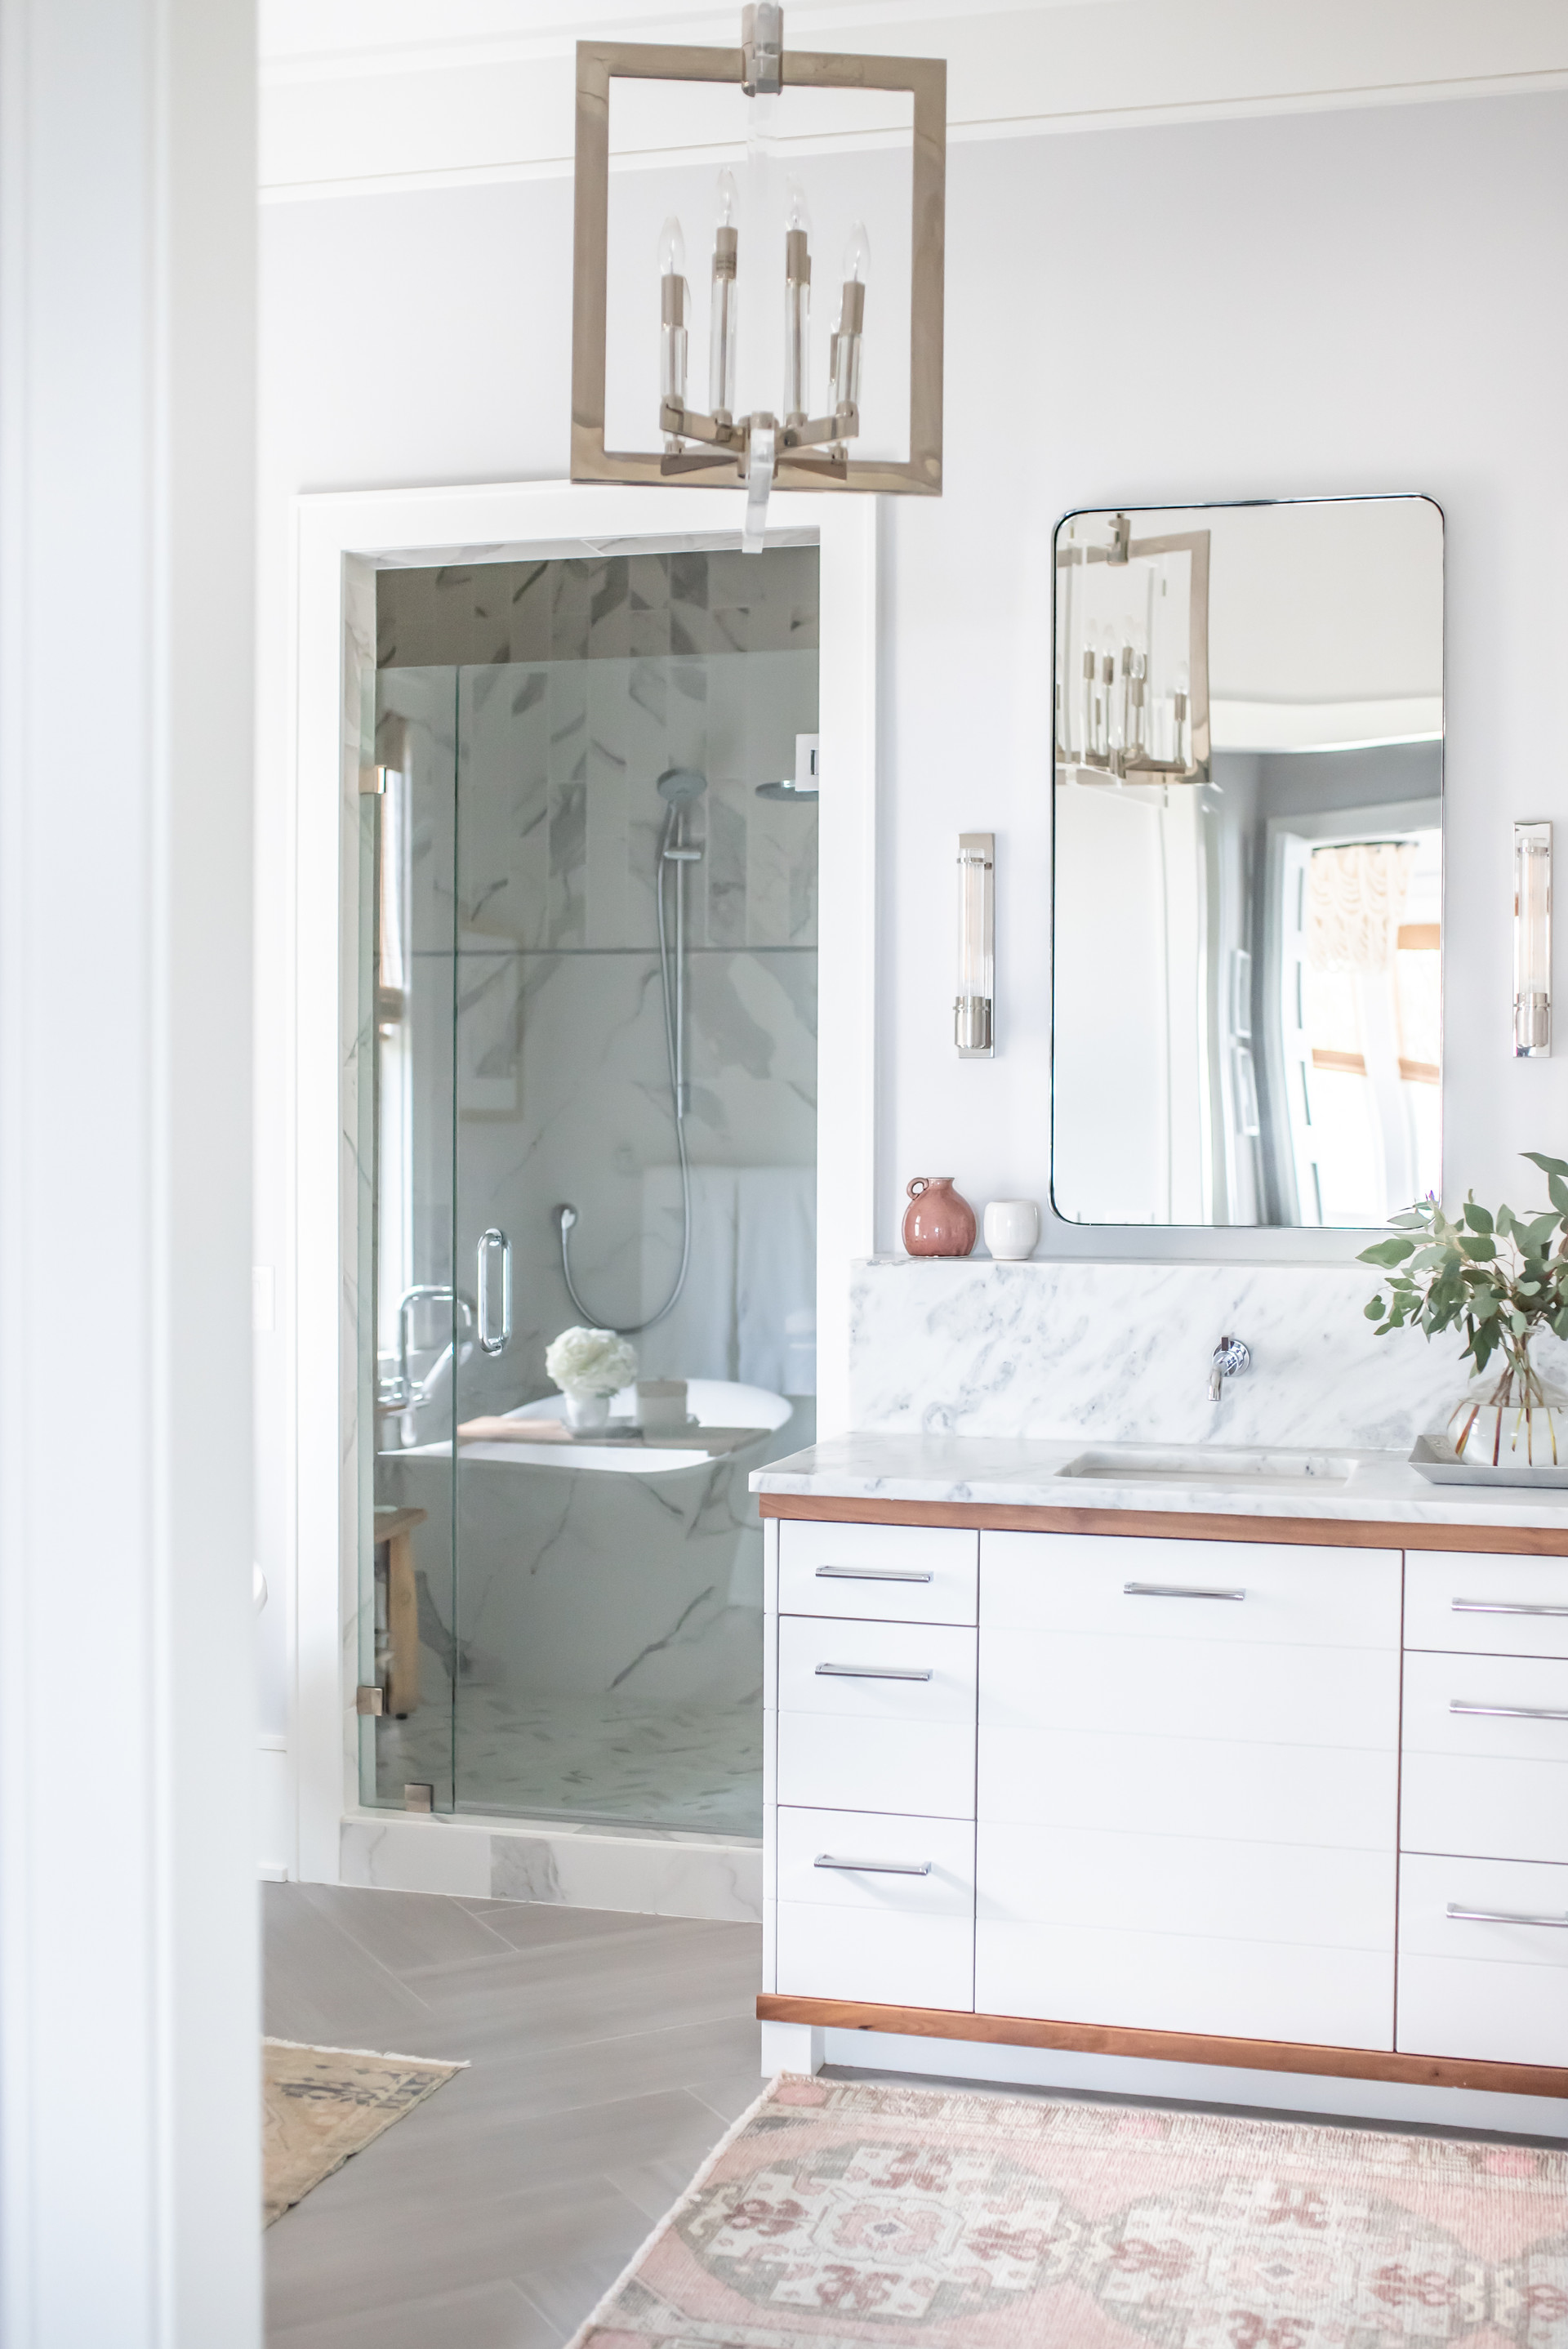 ADC-May1-2019-Master-Bathroom-17.jpg